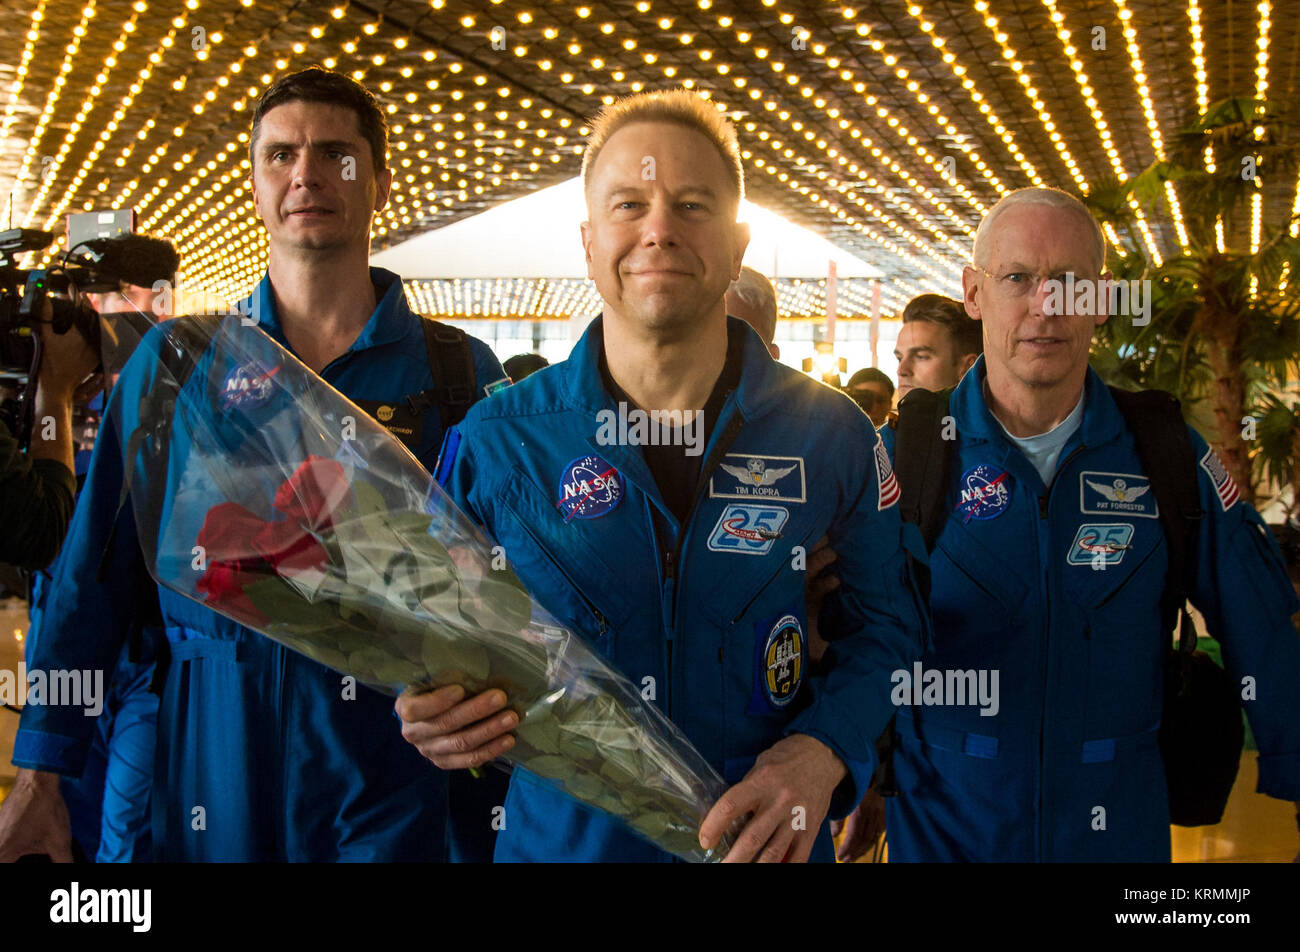 Expedition 47 astronaut Tim Kopra of NASA, center, arrives at the Karaganda Airport in Kazakhstan a few hours after - Stock Image